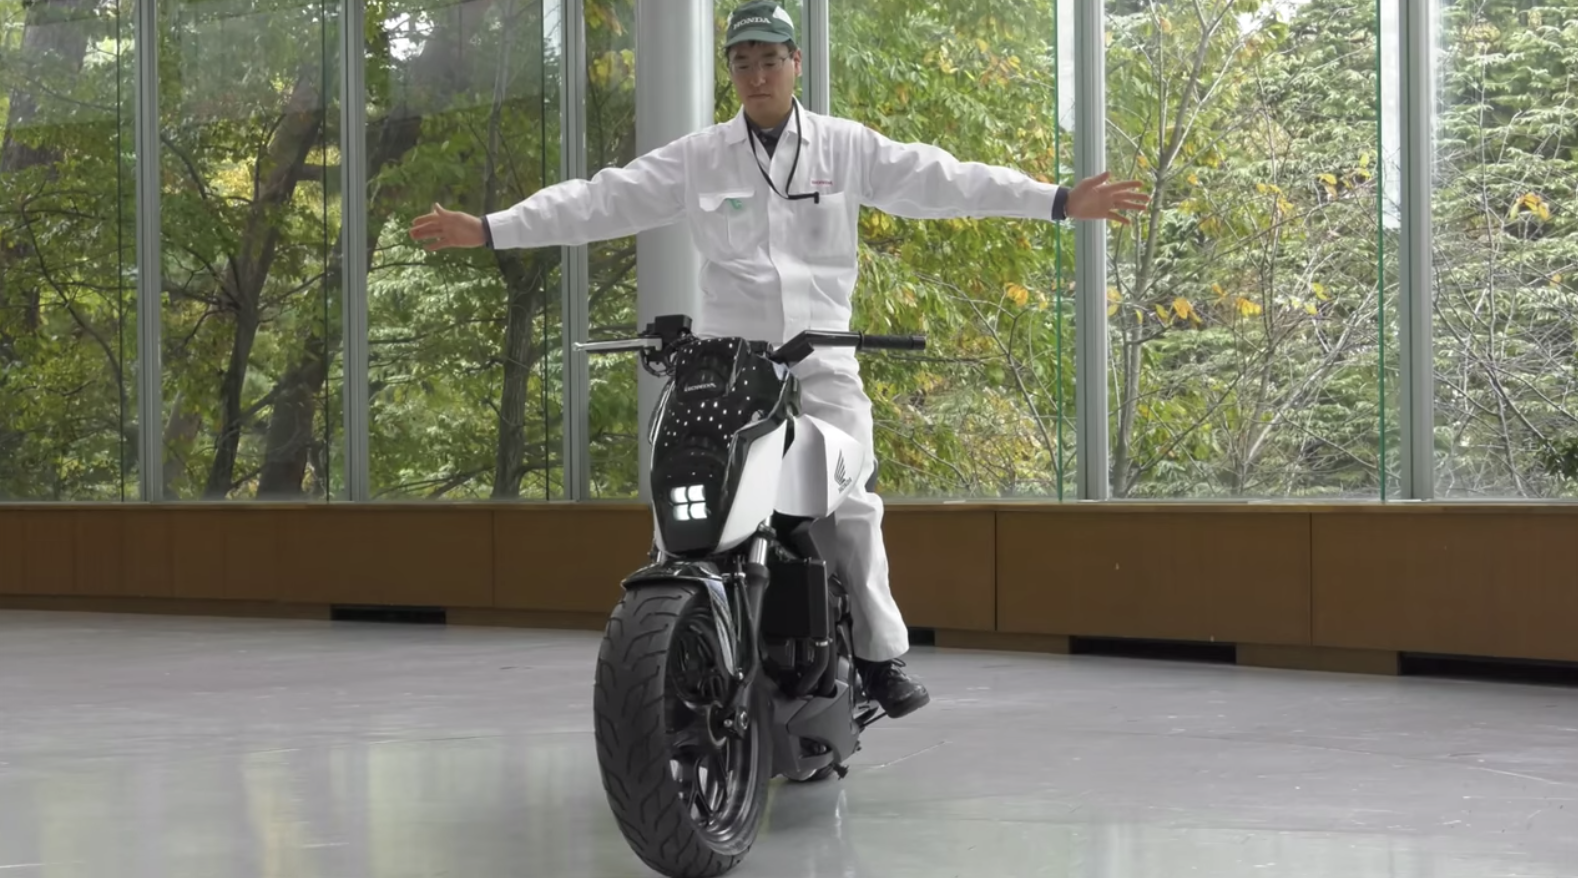 Interesting Engineering: How Does This Motorcycle Stay Upright Without a Gyroscope?